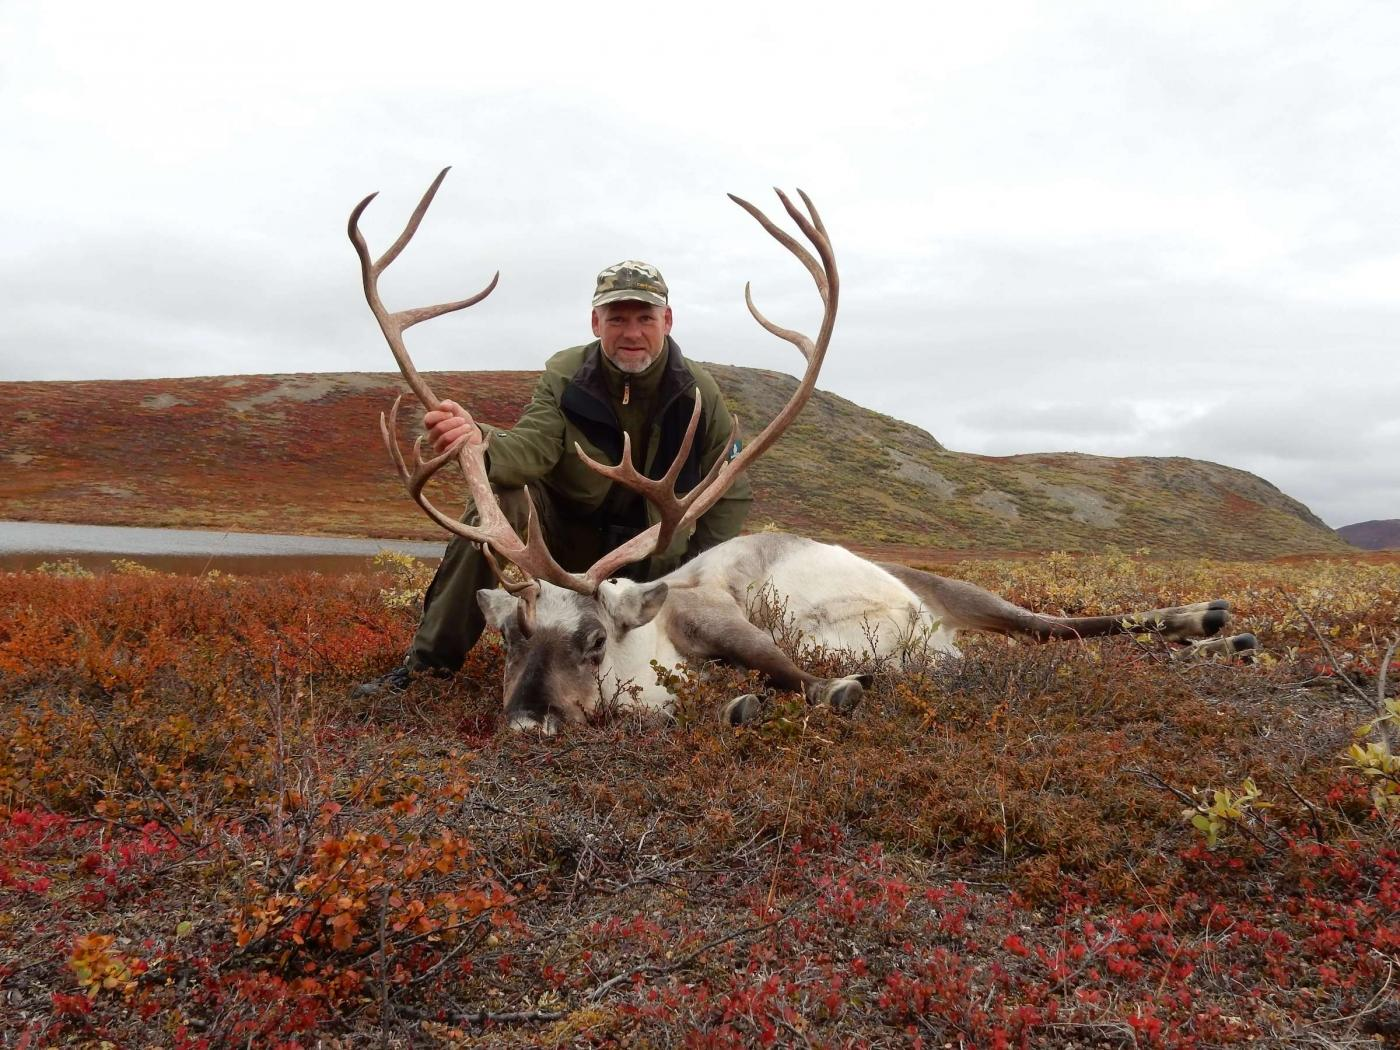 Reindeer in Autumn. Photo by Trophy Hunting Greenland, Visit Greenland